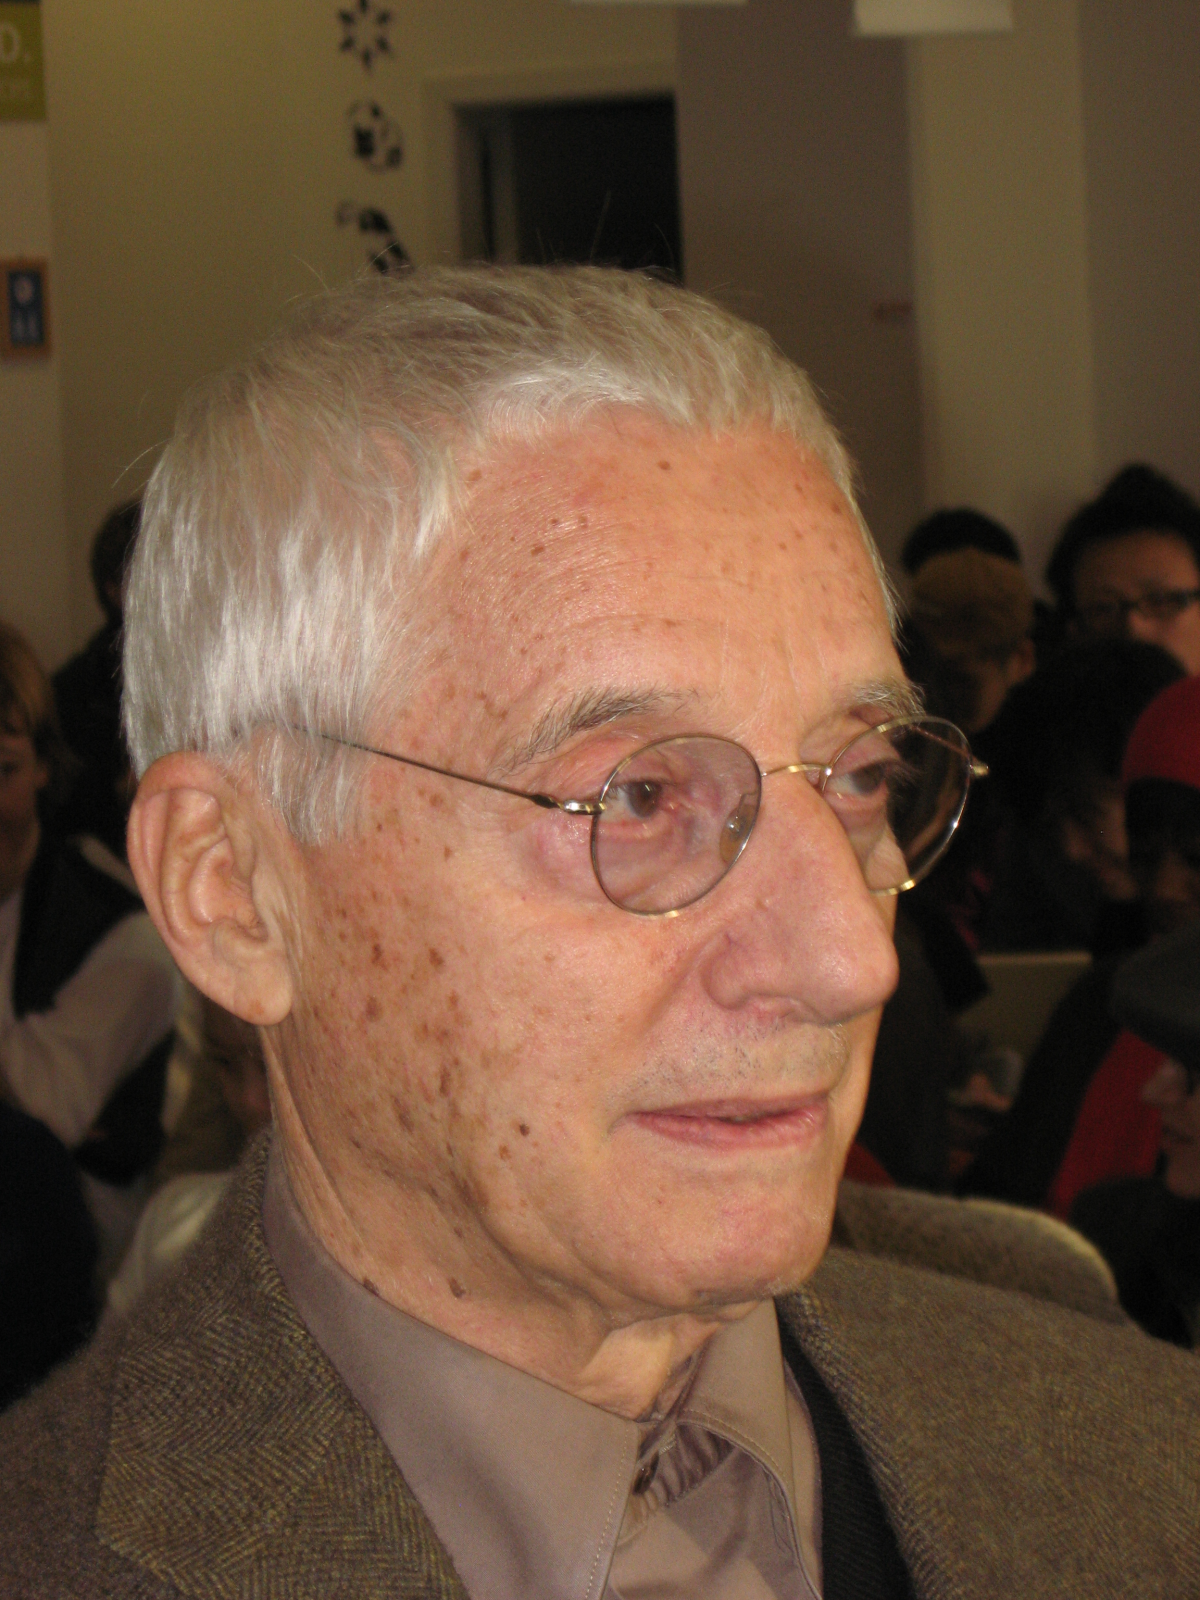 Image of Alessandro Mendini from Wikidata